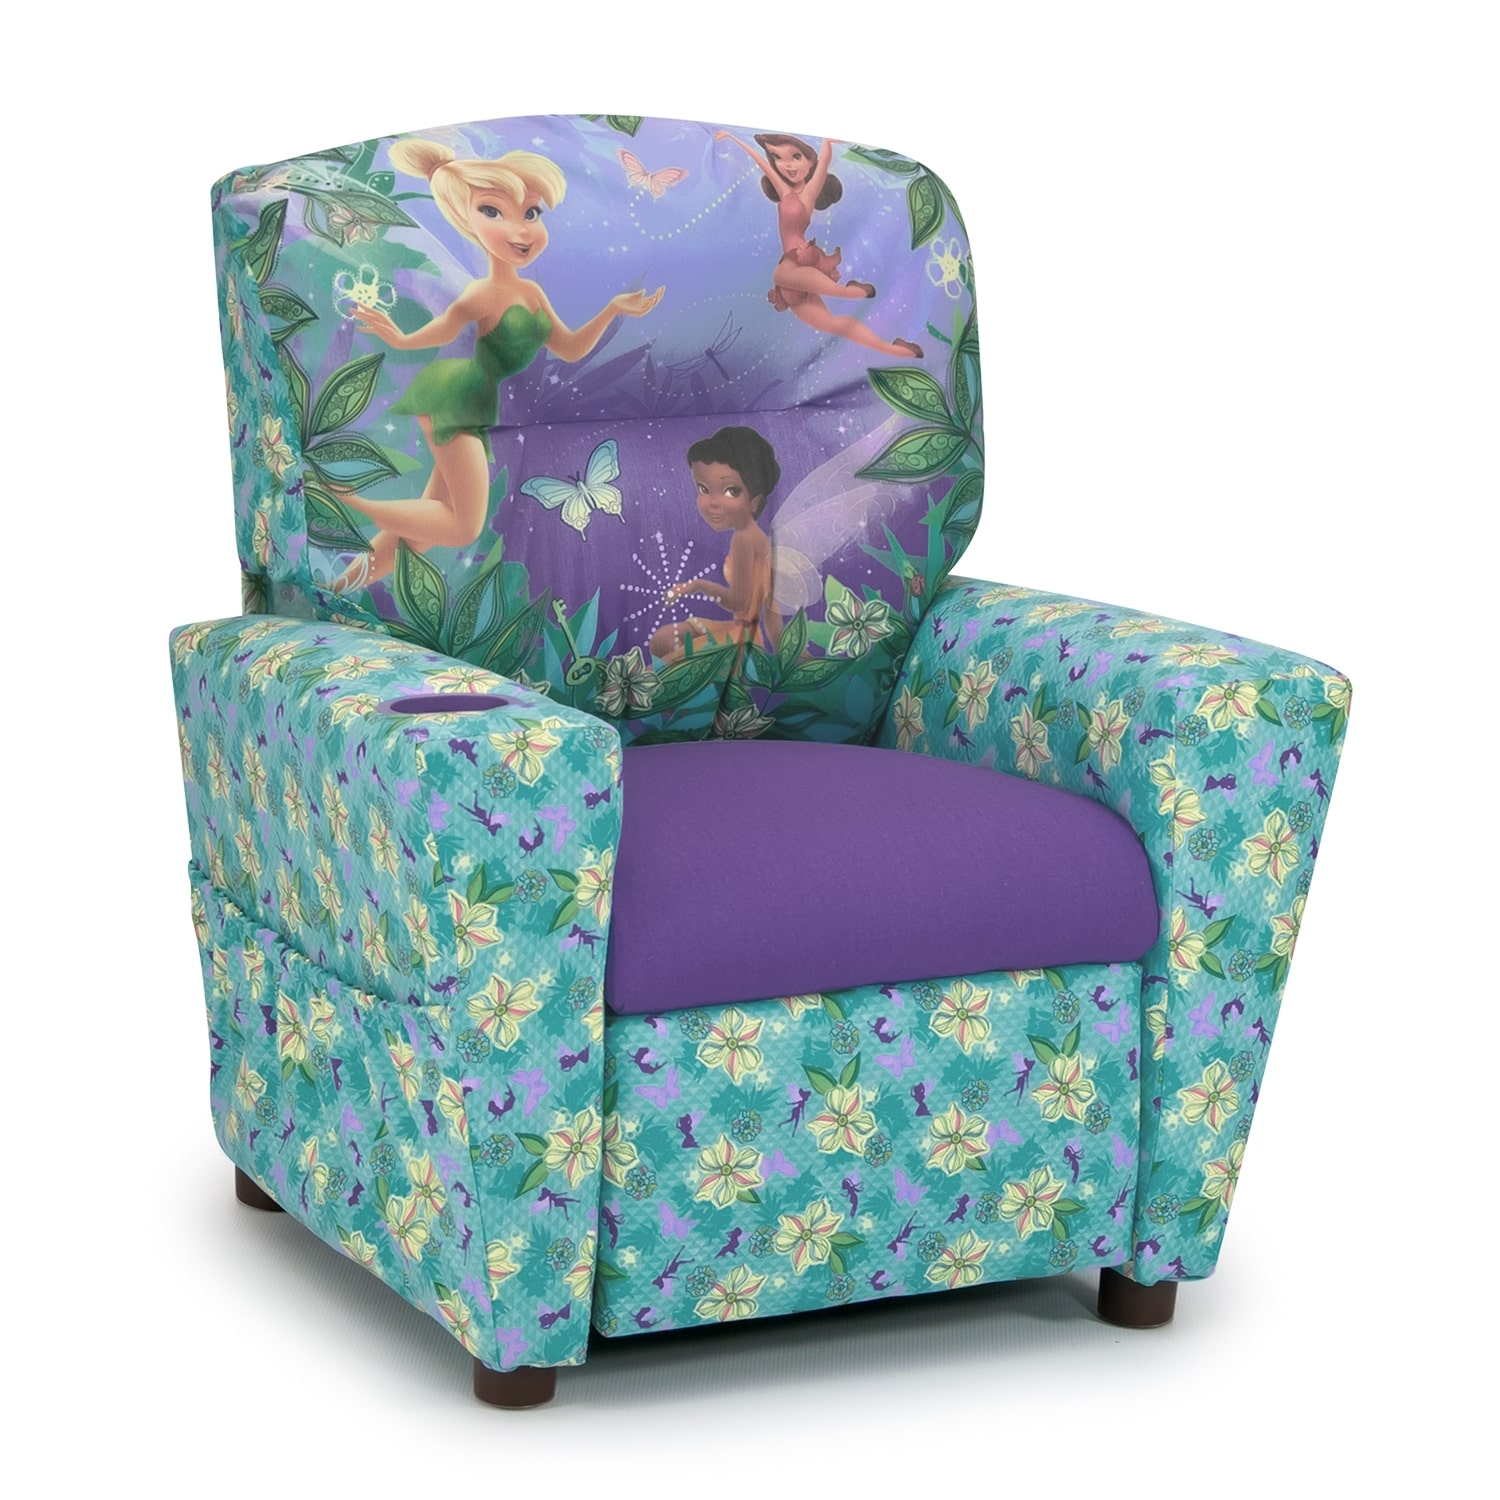 children s living room chairs small vintage chair disney fairies child 39s recliner blue and purple value